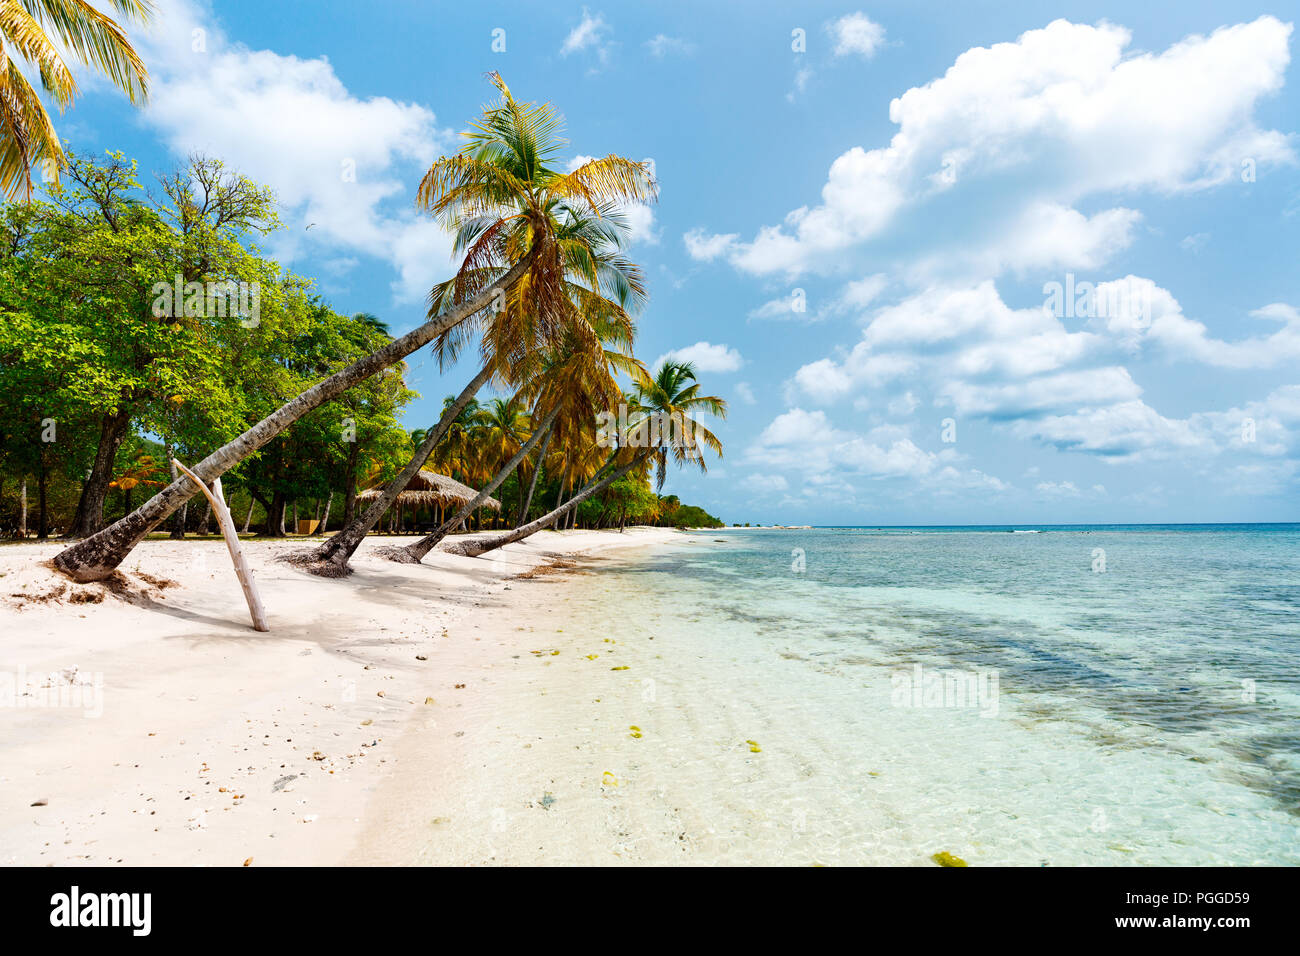 Idyllic tropical beach with white sand, palm trees and turquoise Caribbean sea water on Mustique island in St Vincent and the Grenadines - Stock Image